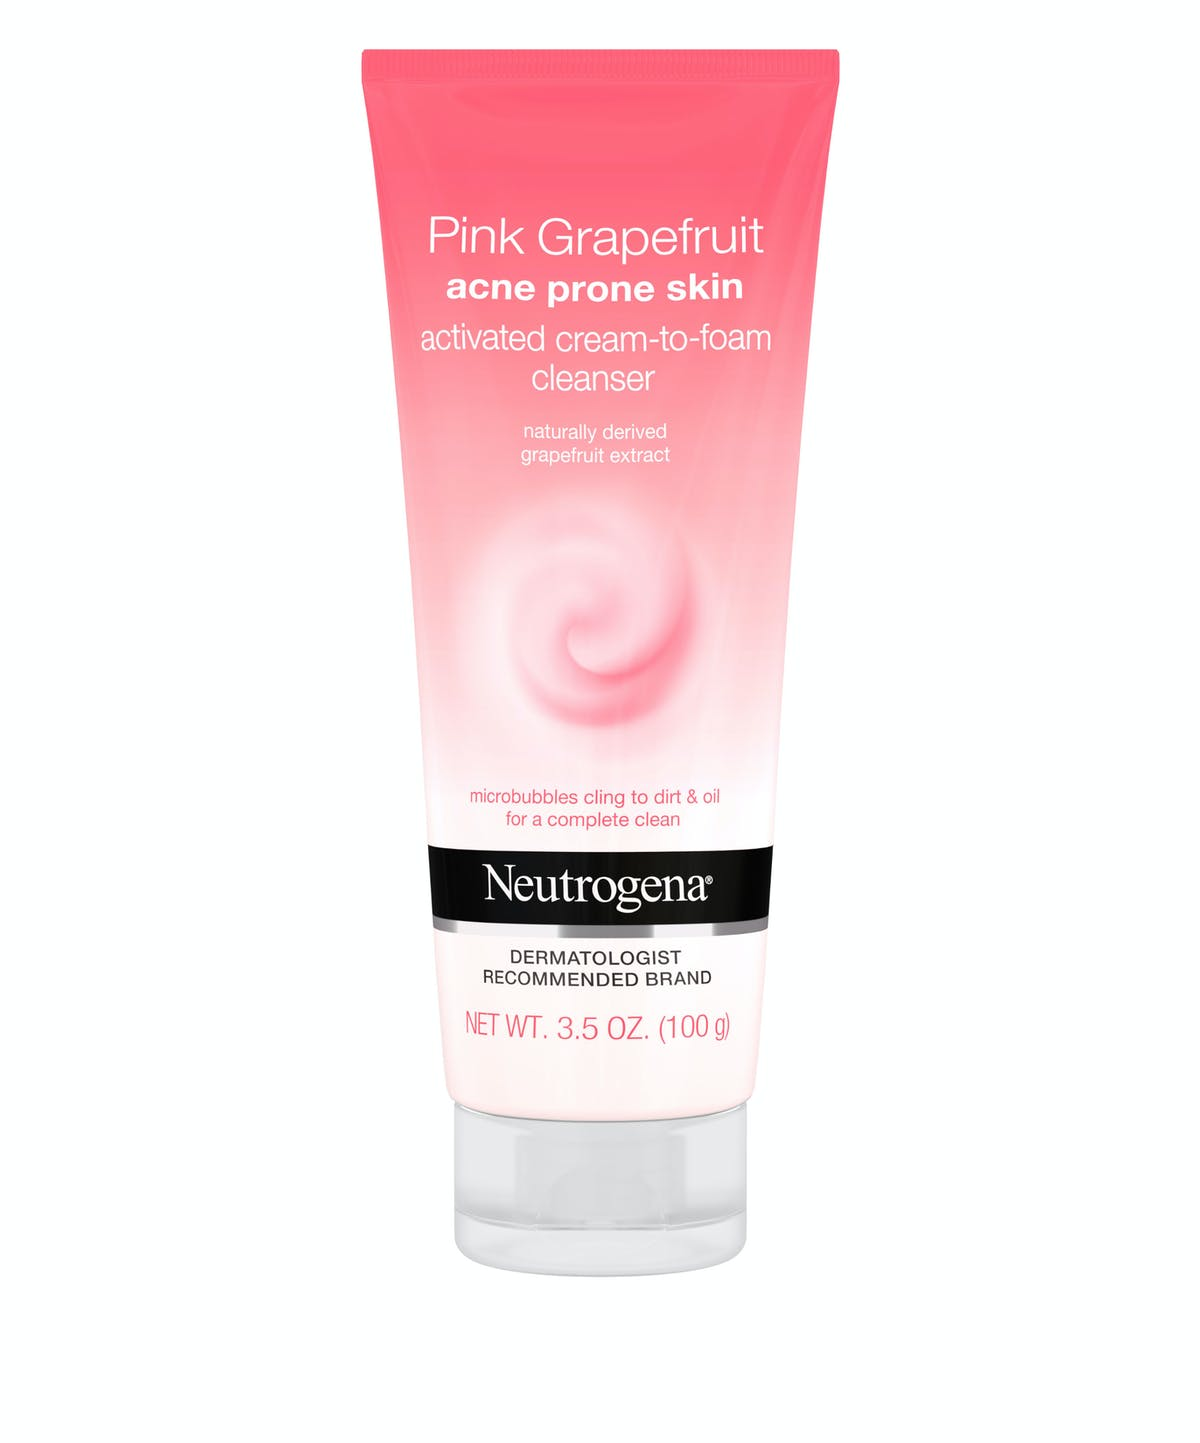 Pink Grapefruit Acne Prone Skin Activated Cream-to-Foam Cleanser by Neutrogena